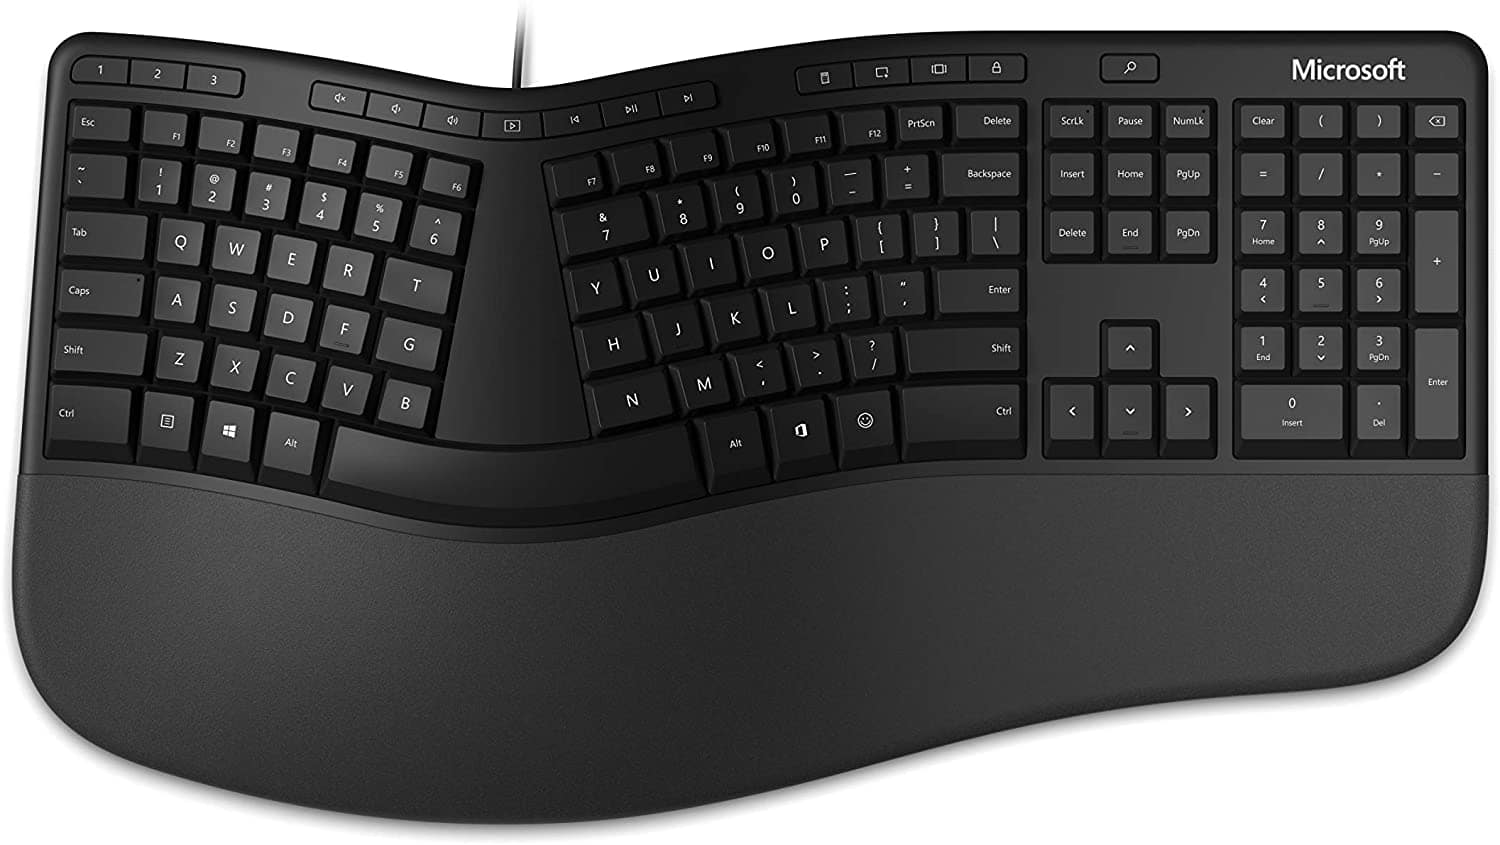 Up to $20 off Microsoft Ergonomic Keyboard and other select Microsoft Accessories $39.99